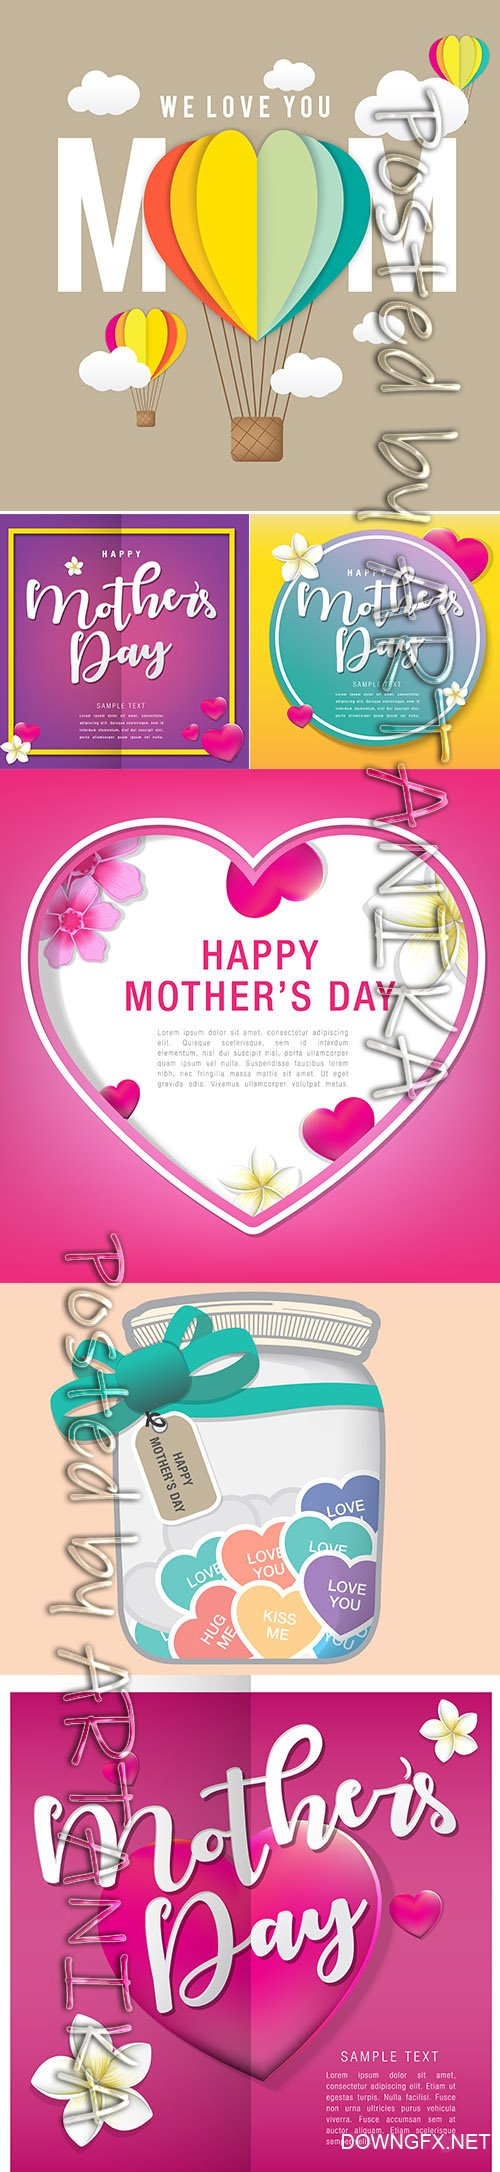 Elegant Mothers Day Greeting Card Design Templates